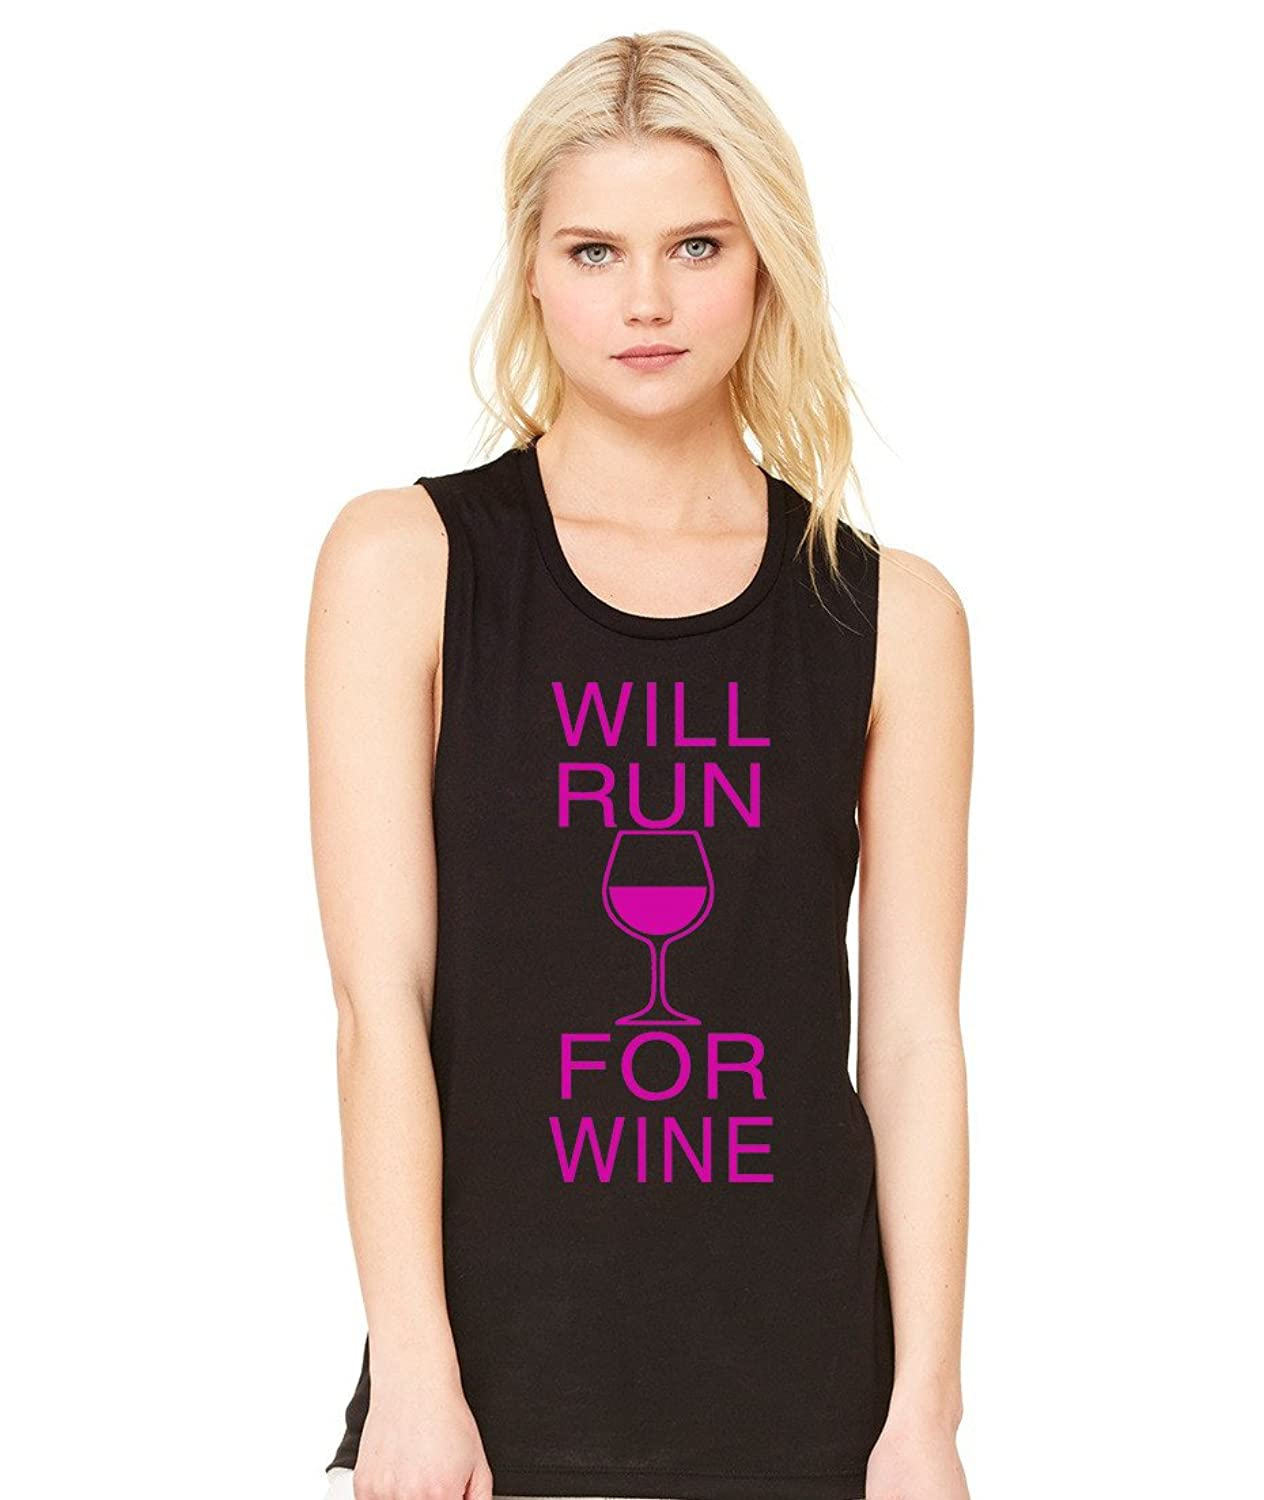 Will Run For Wine Workout Flowy Muscle Tank Top By Superior Apparel